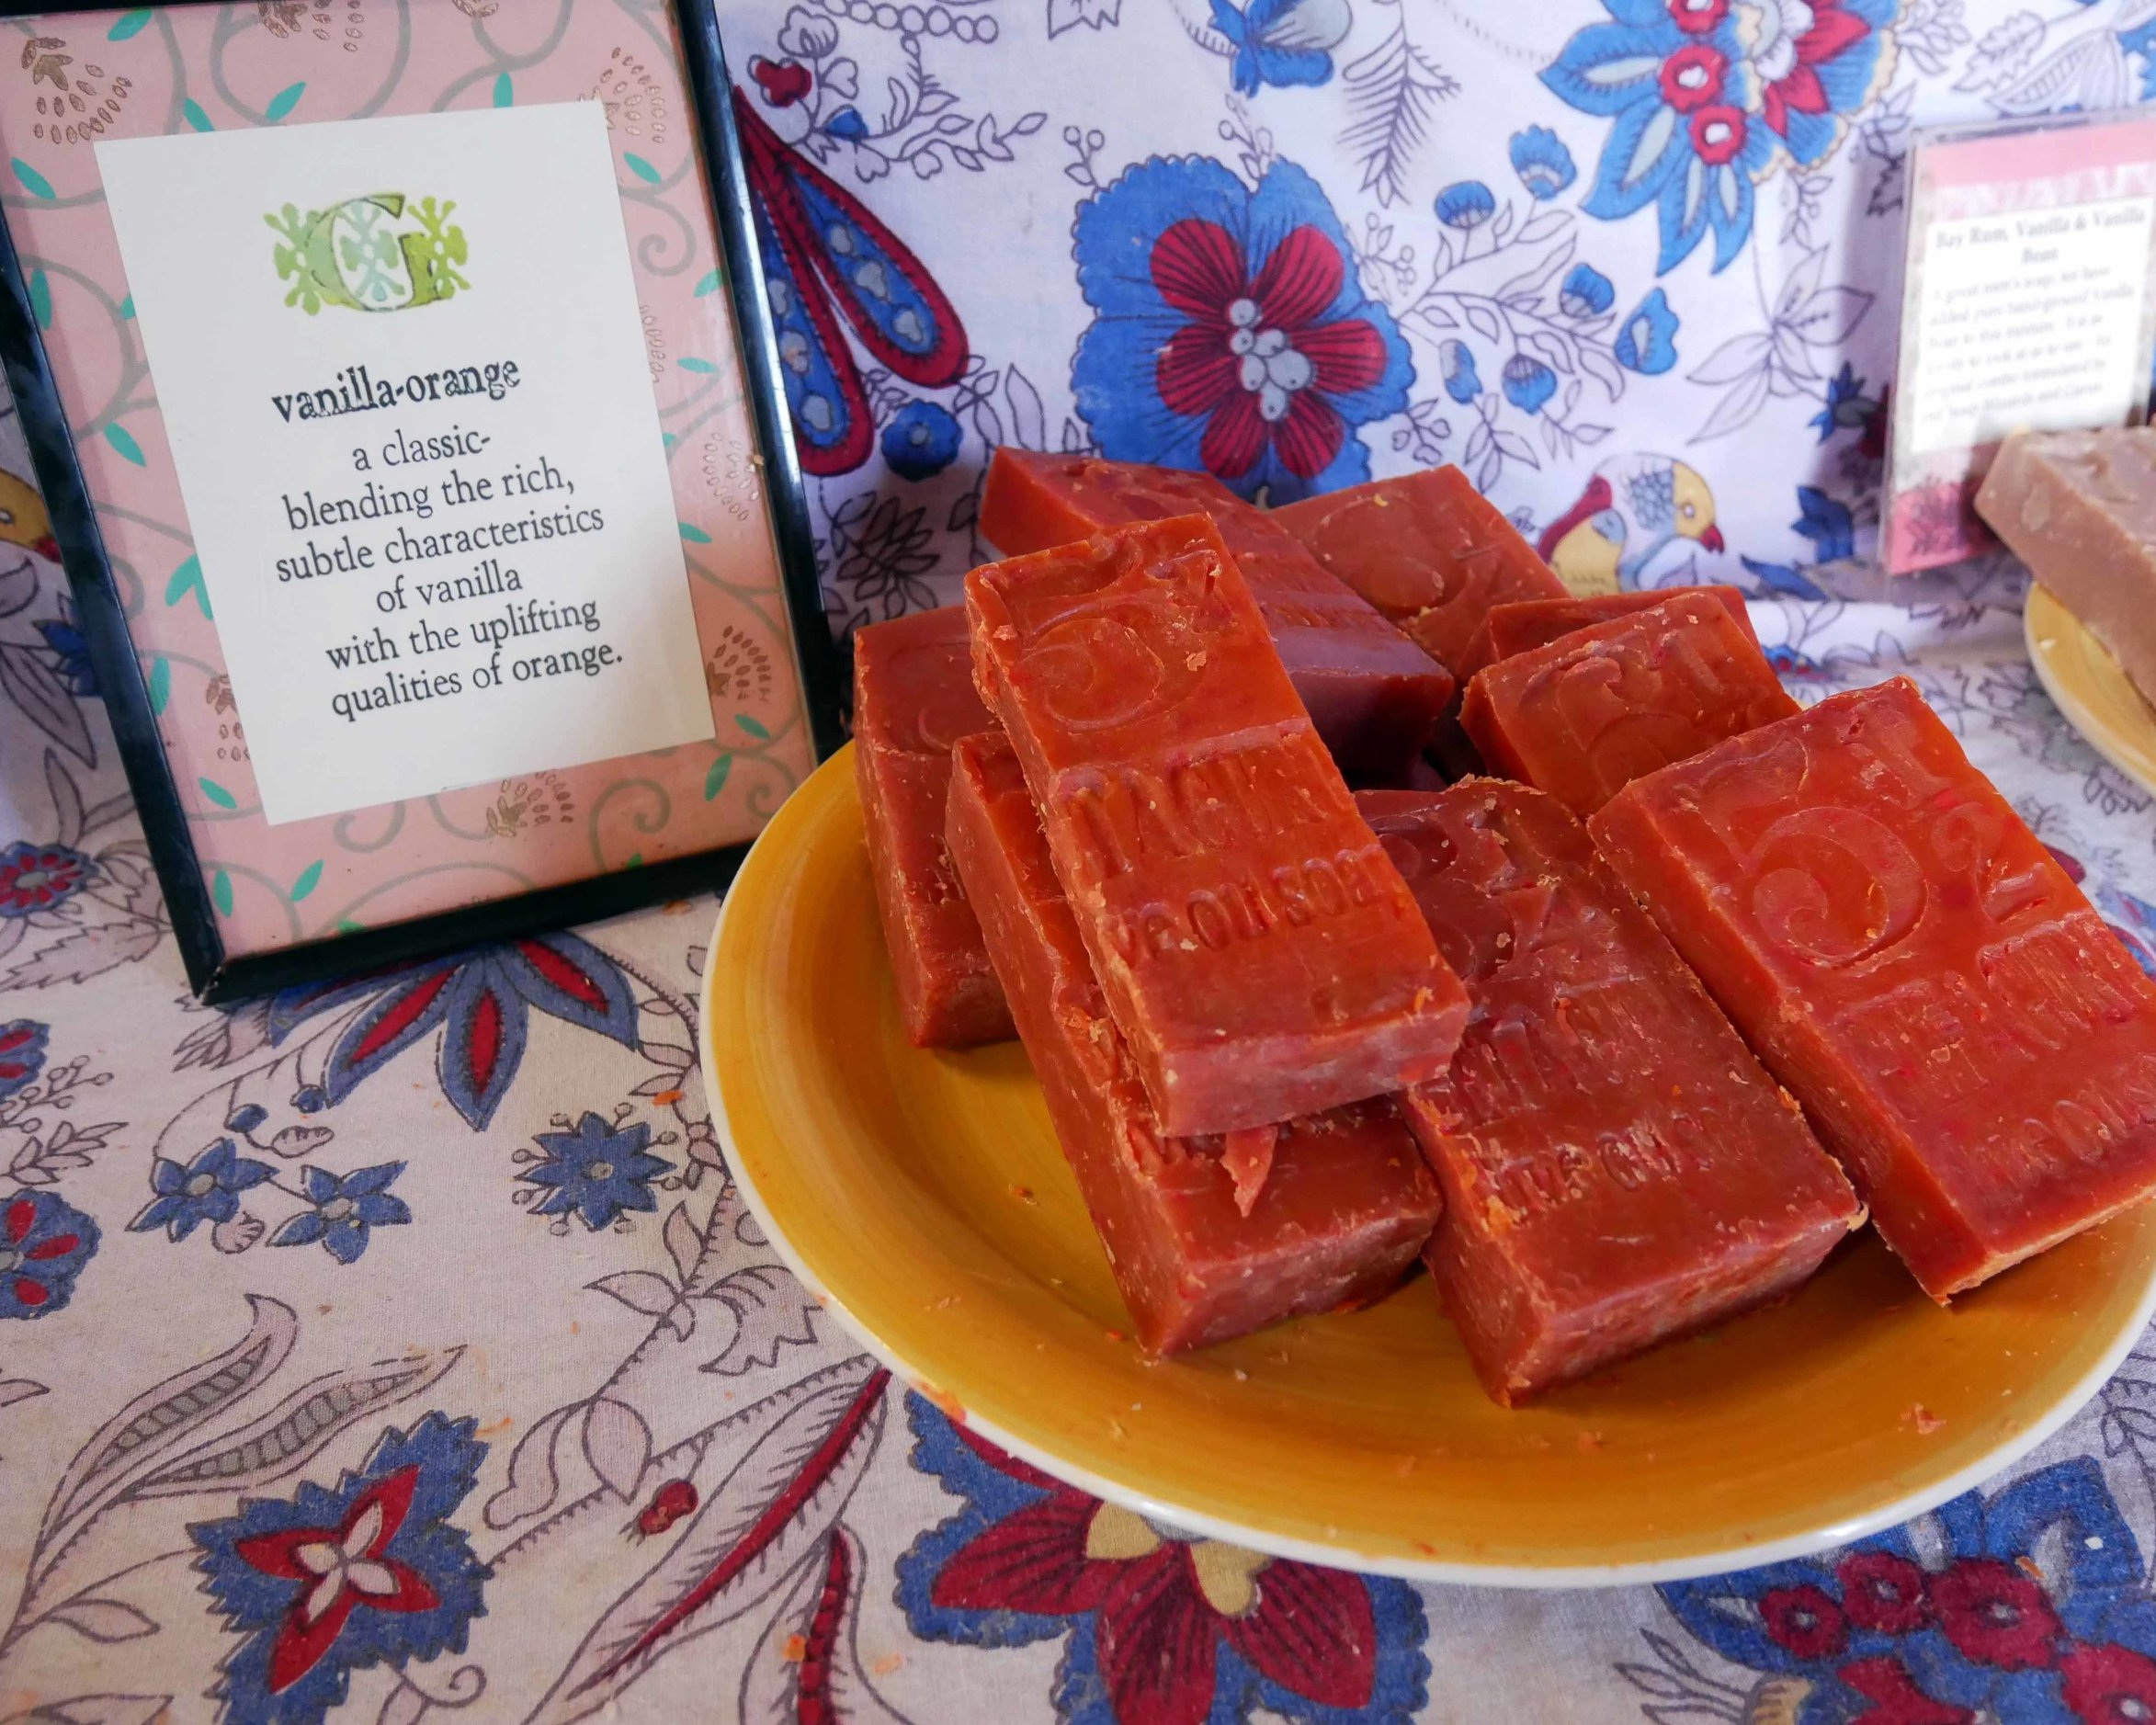 Gorgeous homemade soaps at GetaGuru, my favourite shop in Tarpon Springs